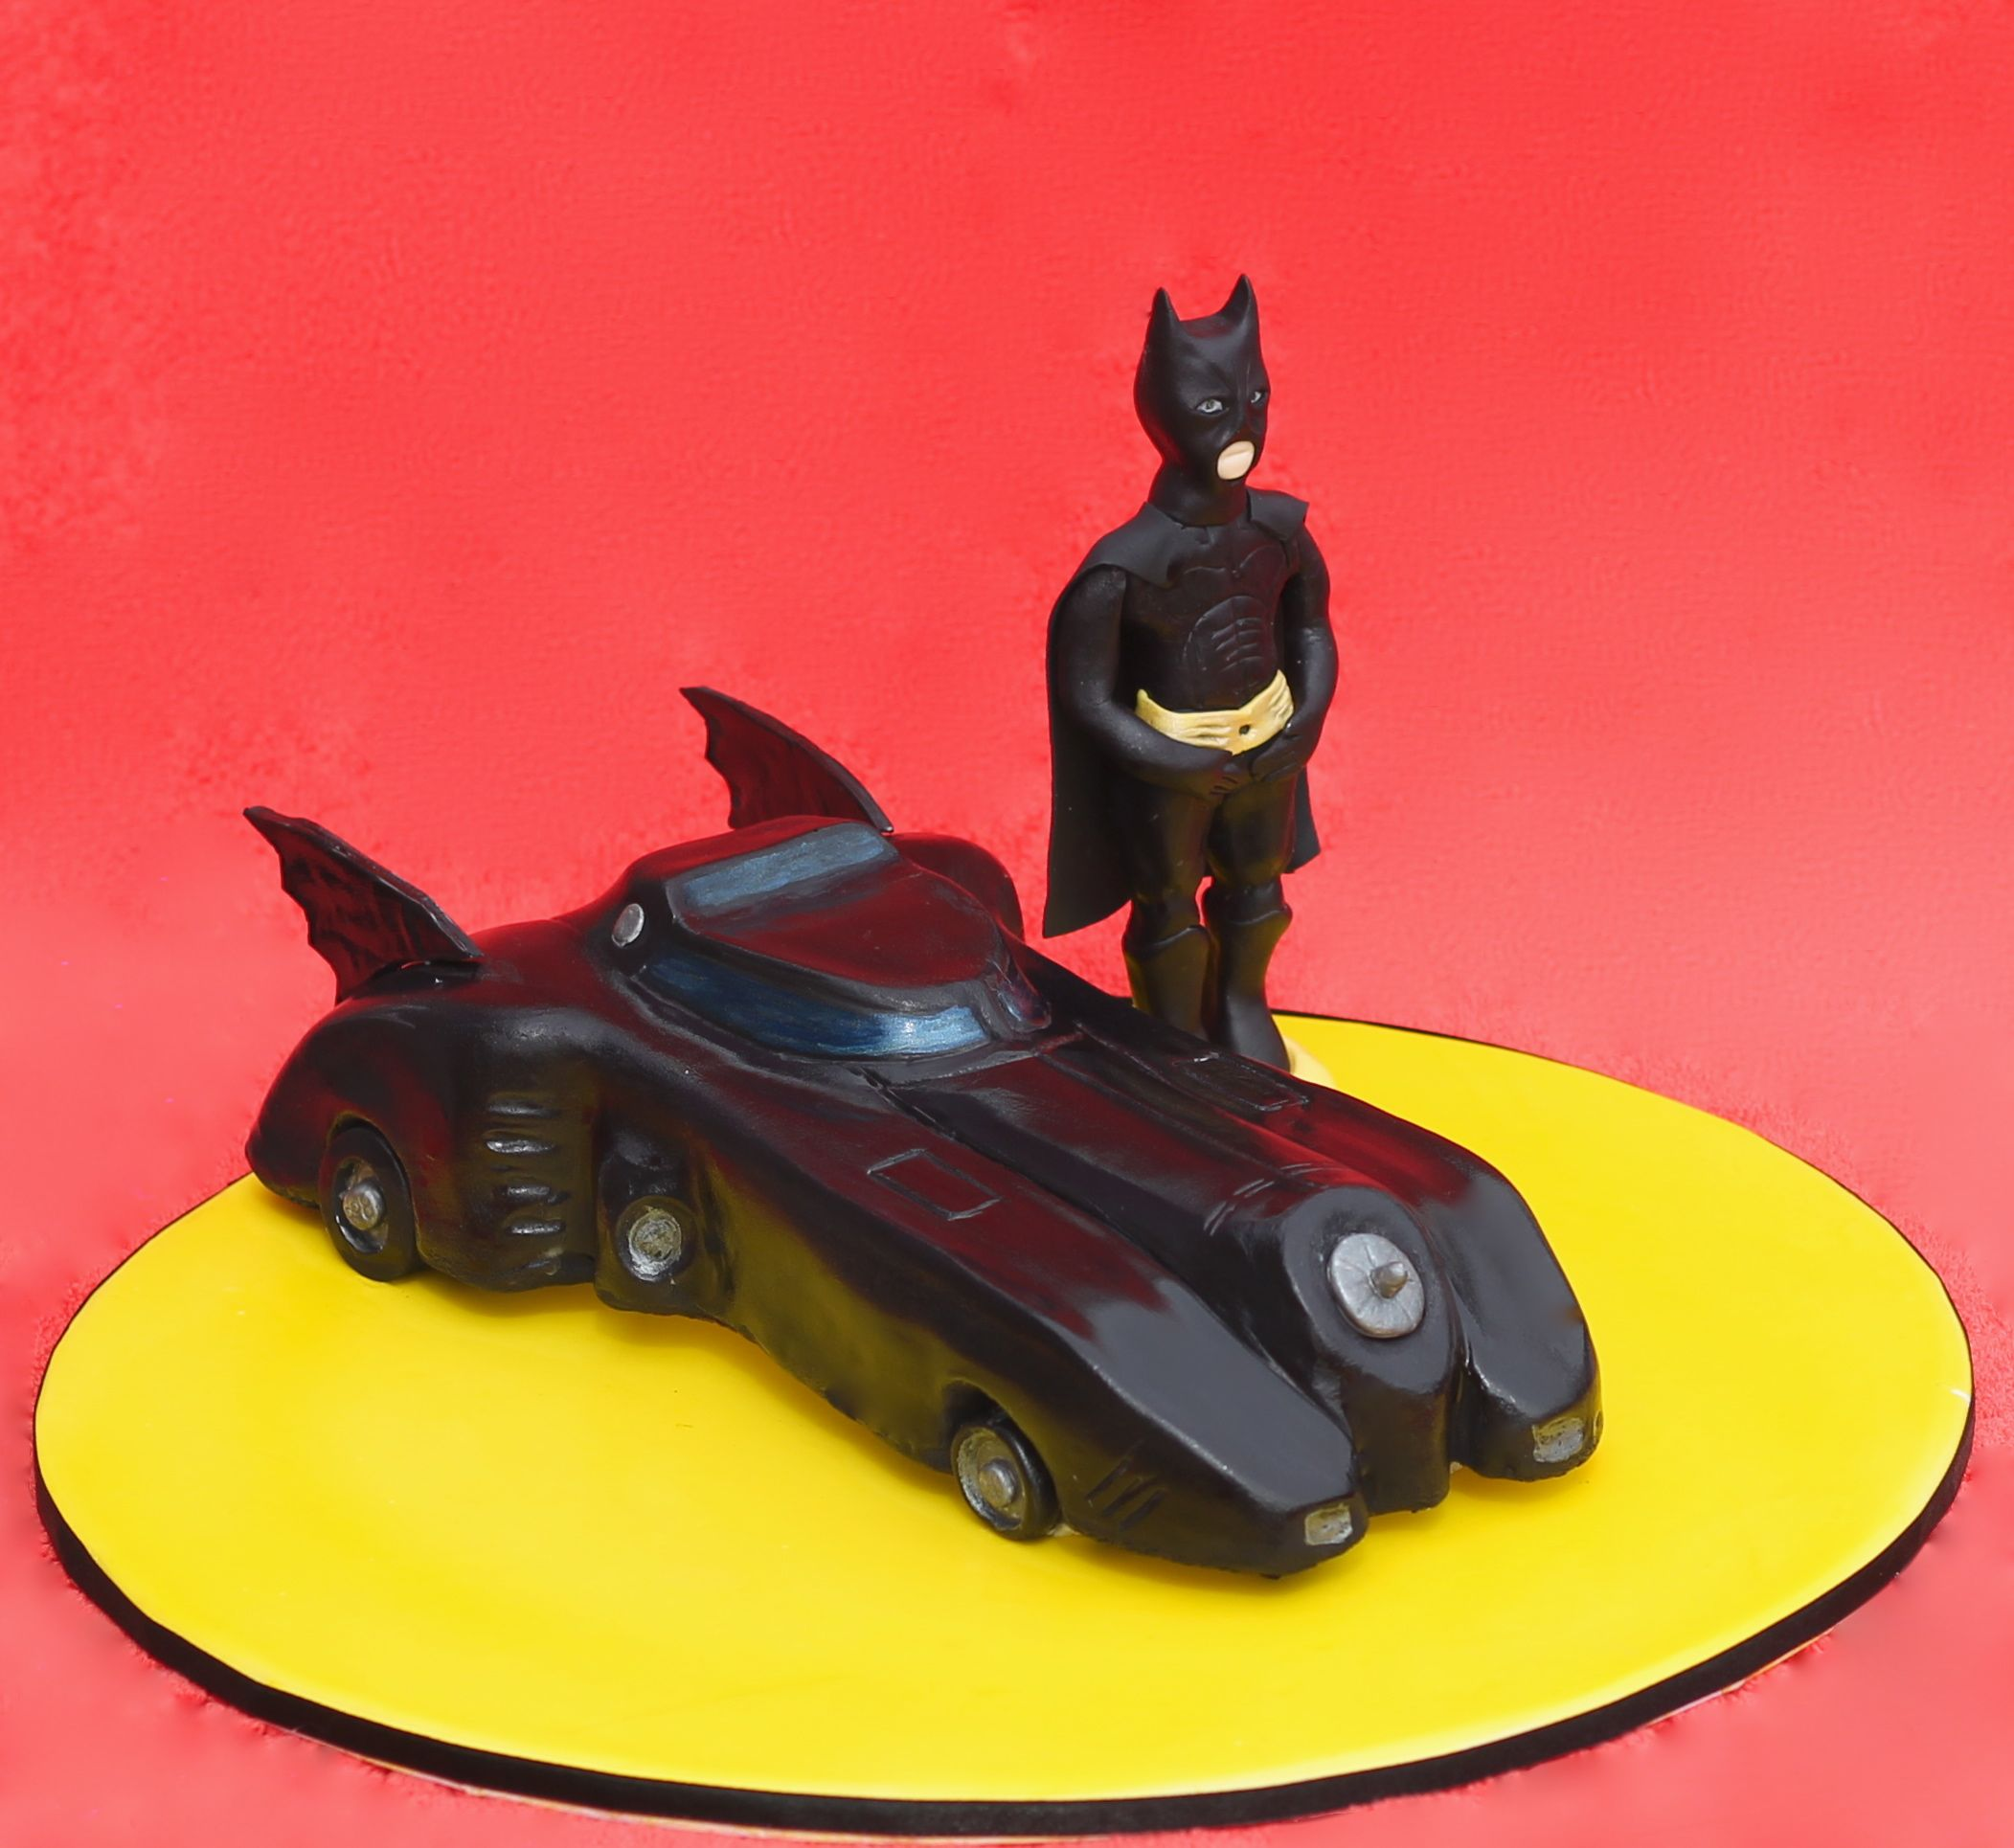 Superhero Cake – Batmobile